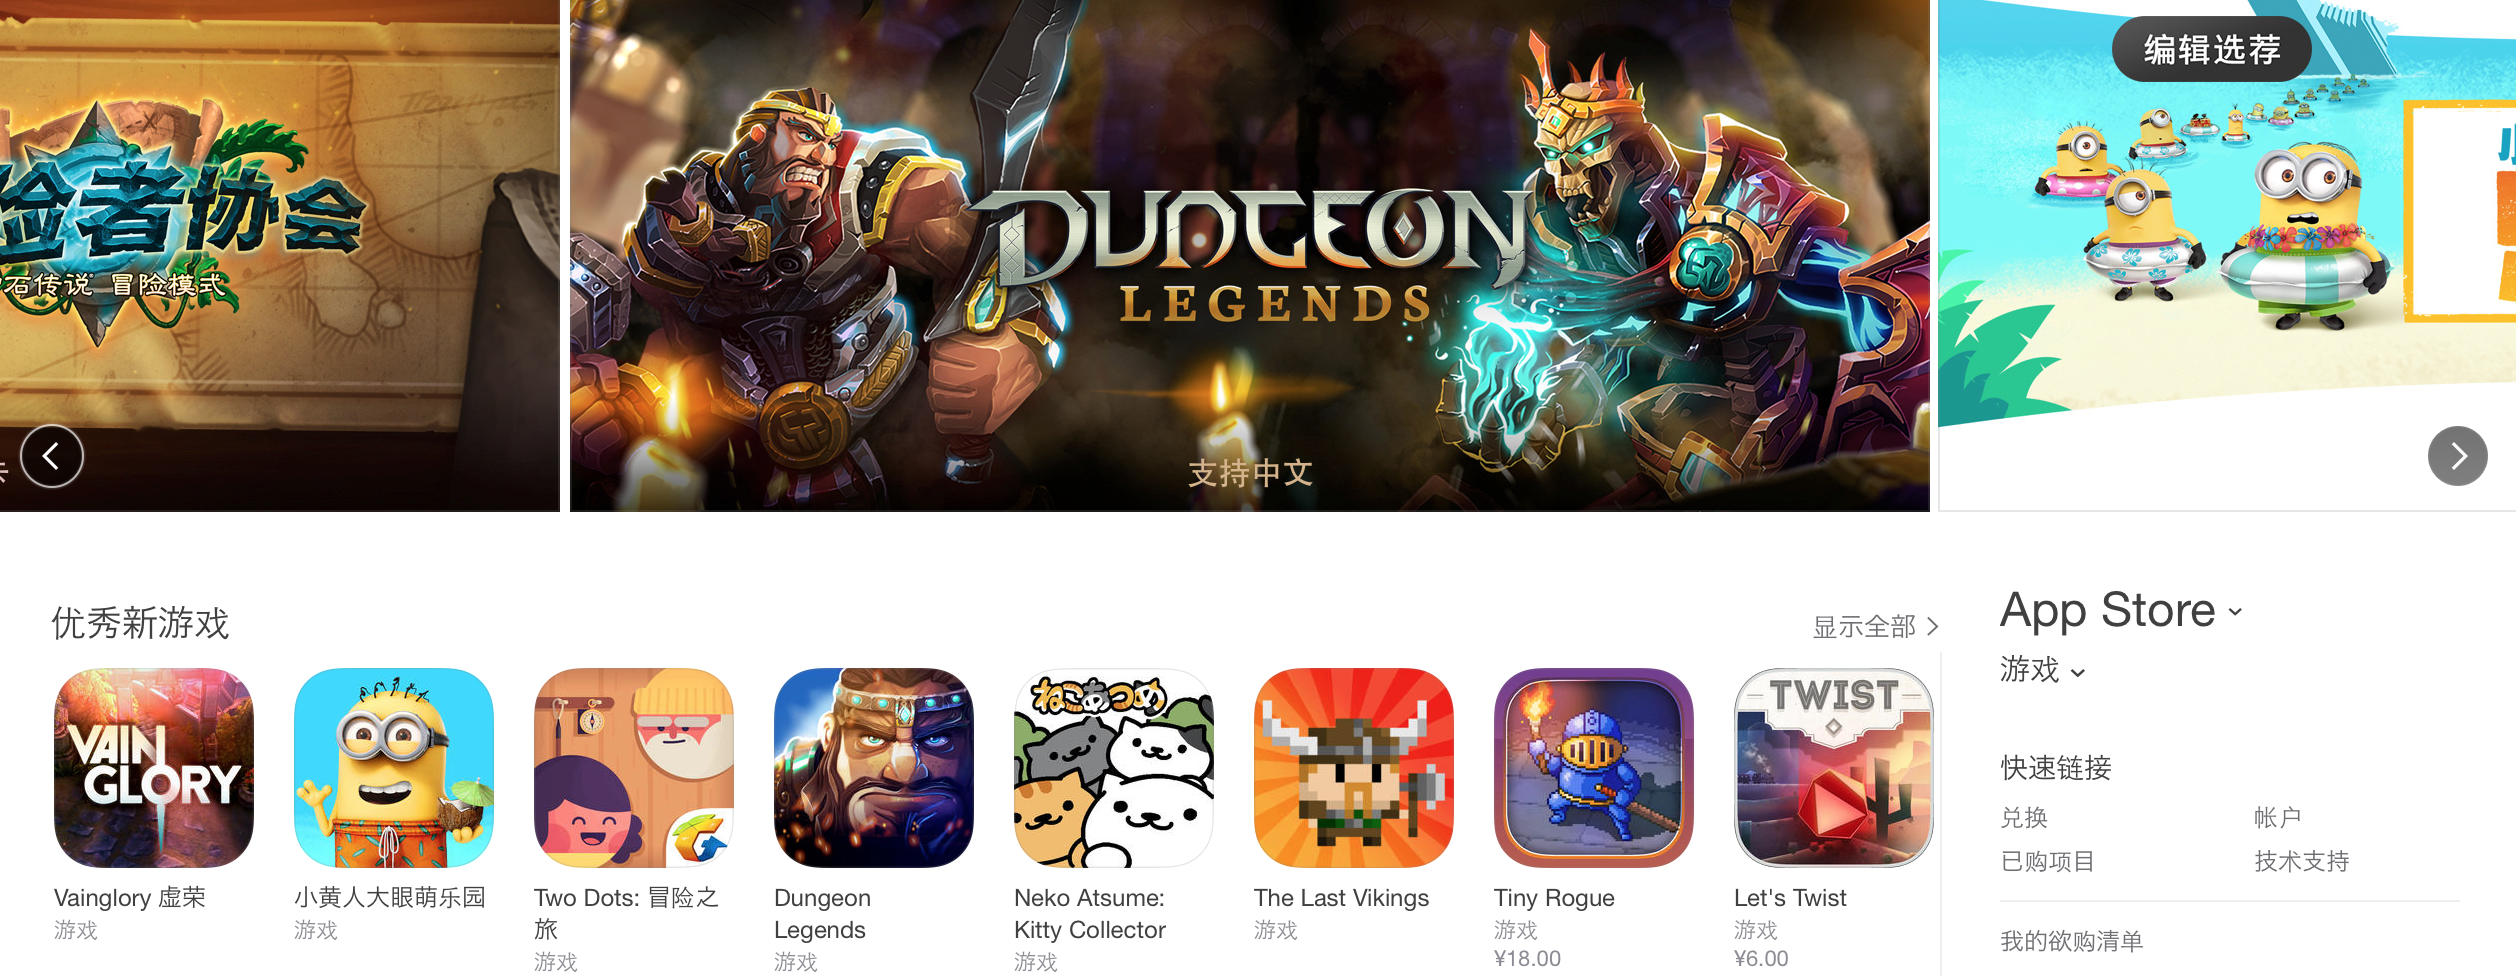 Dungeon Legends Features iTunes China